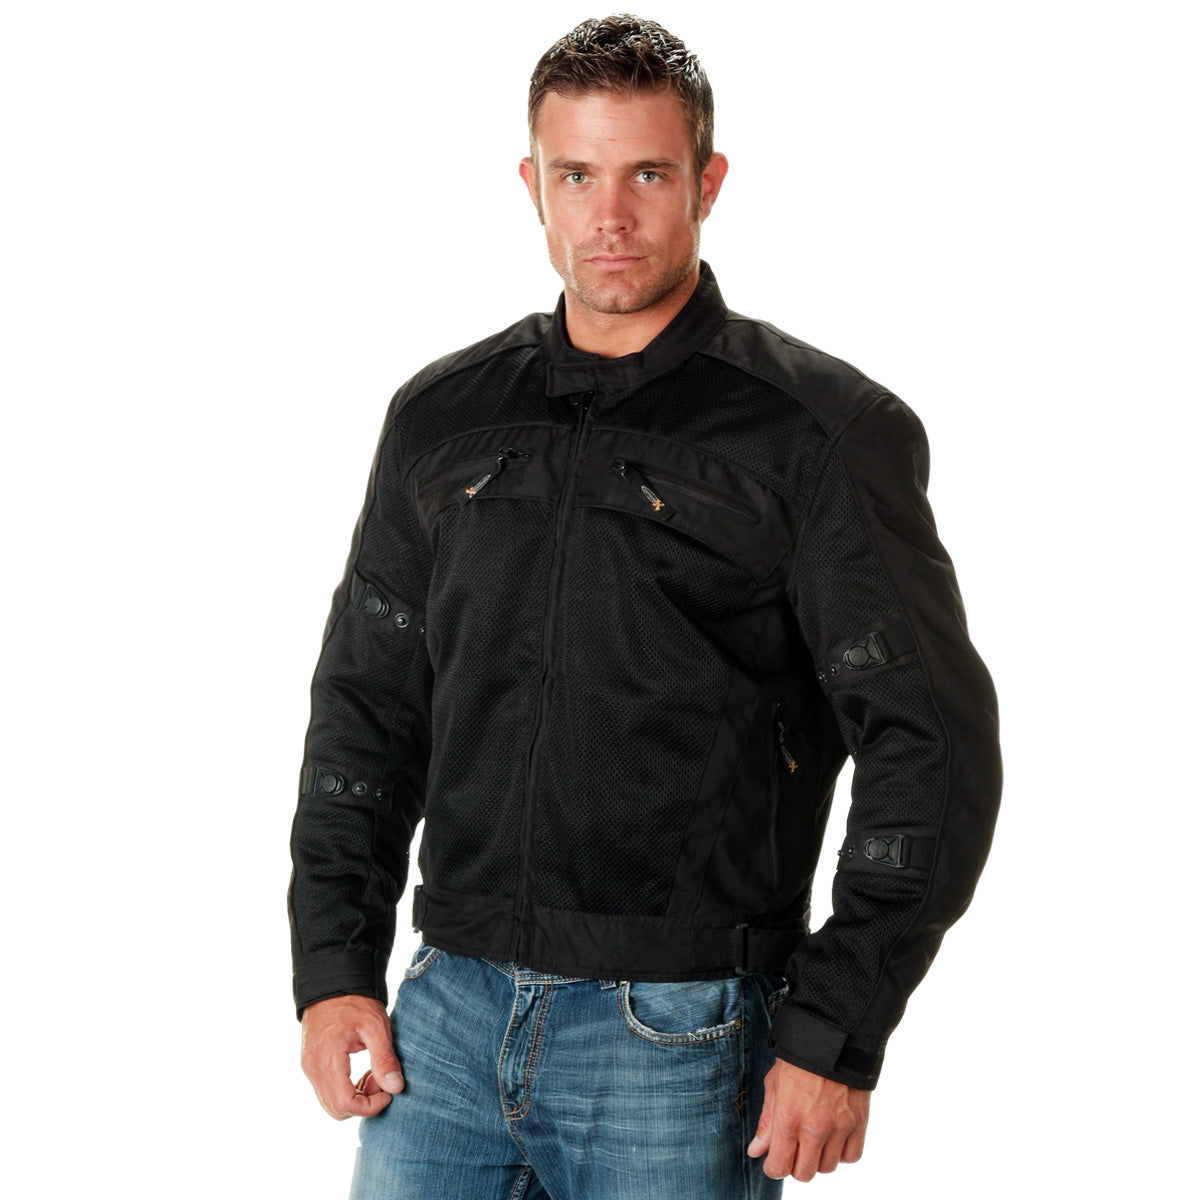 Xelement CF380 'Devious' Men's Black Mesh Jacket with X-Armor CE